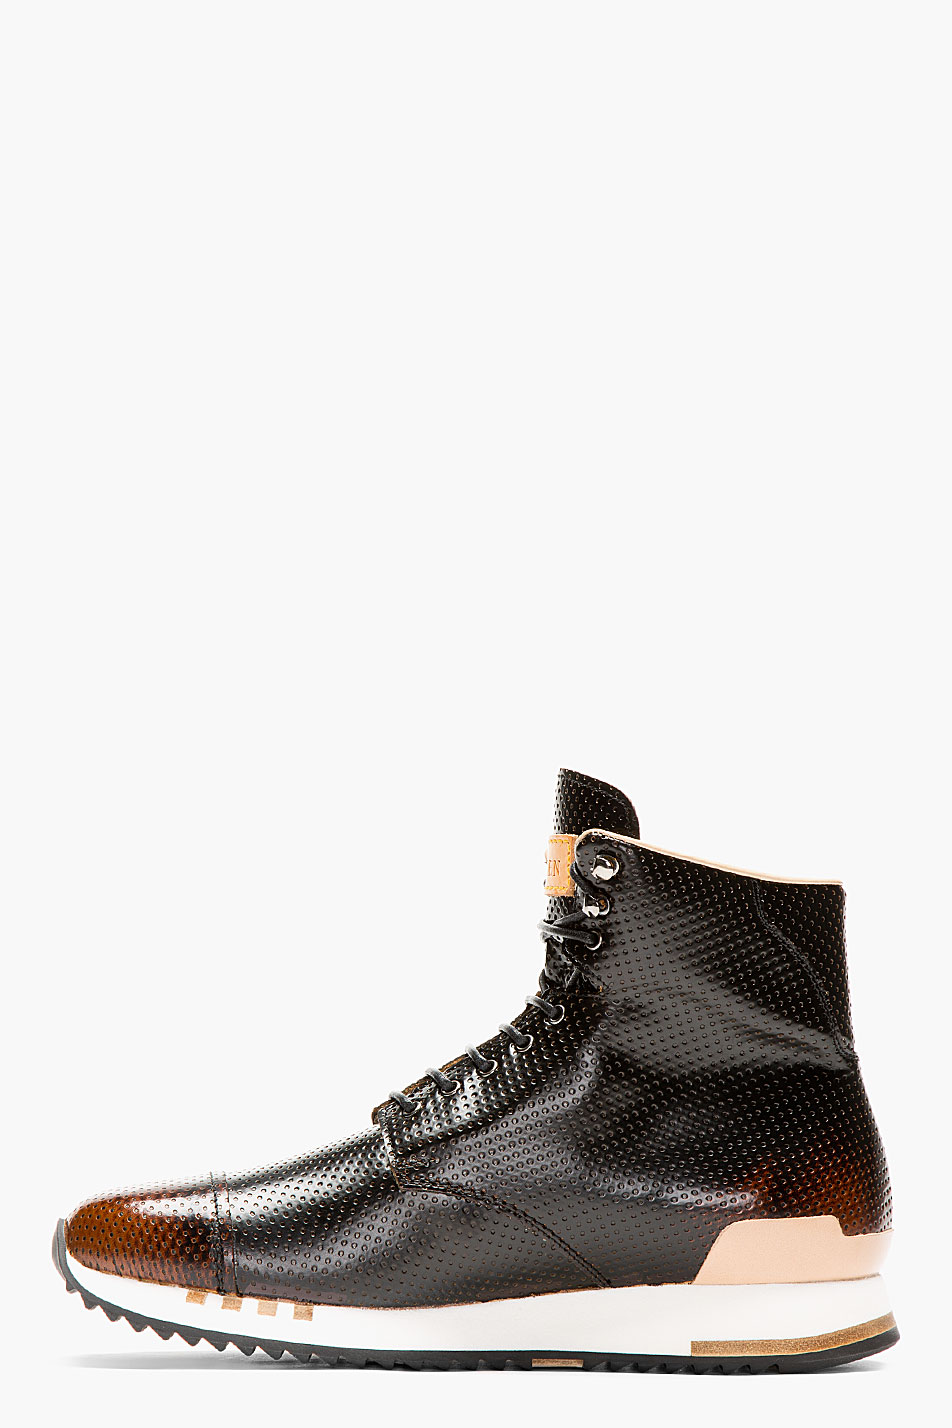 Alexander Mcqueen Black Punch Hole High Top Sneakers In